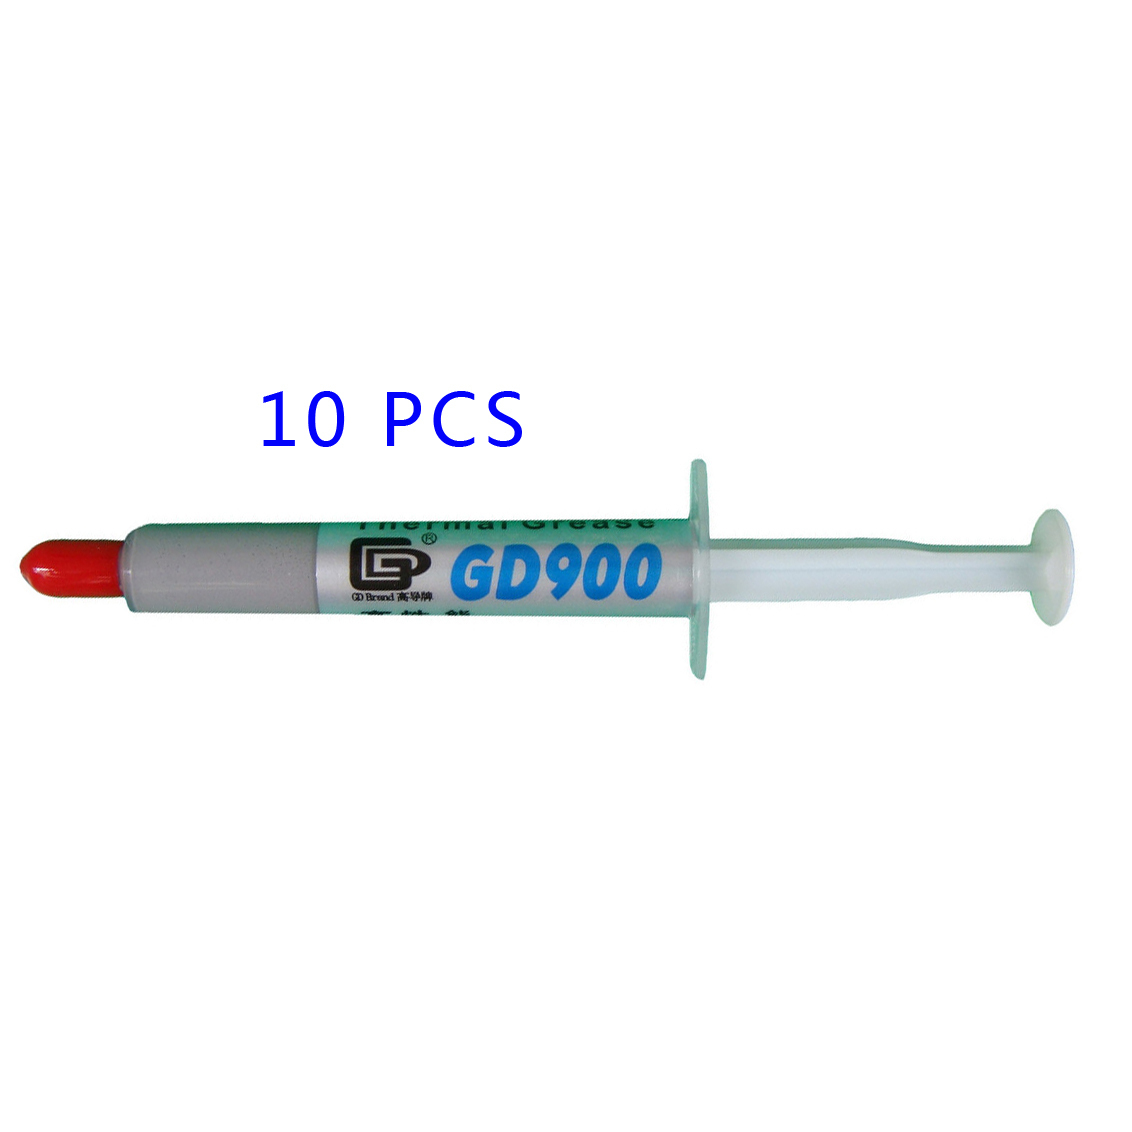 10PCS GD900 Gray Net Weight 3 Gram Thermal Grease Silicone High Performance Heat Sink For CPU GPU Cooler SY3 Thermal Compound